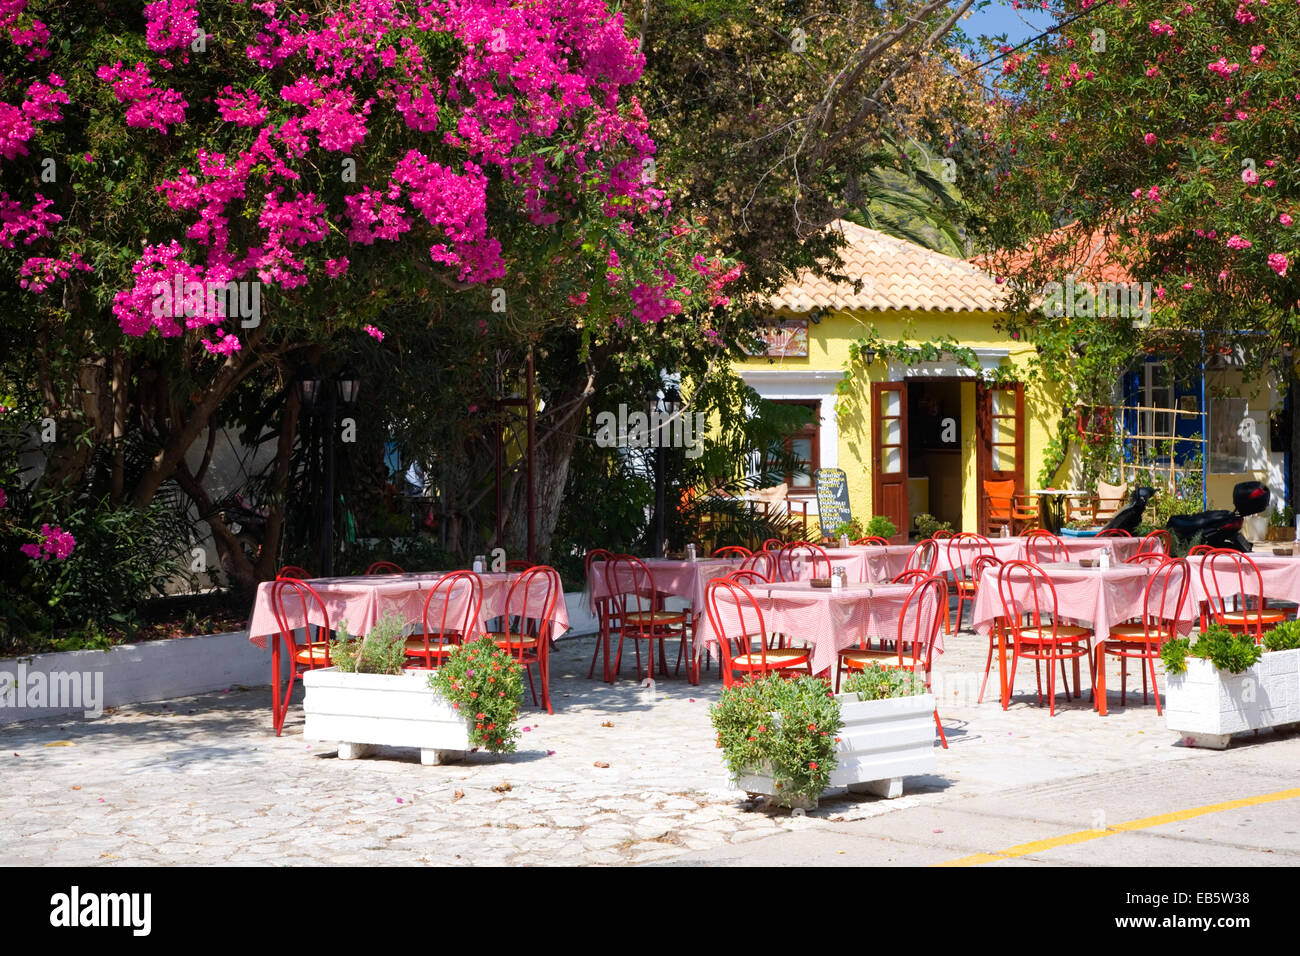 Asos, Kefalonia, Ionian Islands, Greece. Colourful taverna in the village square, bougainvillea prominent. - Stock Image